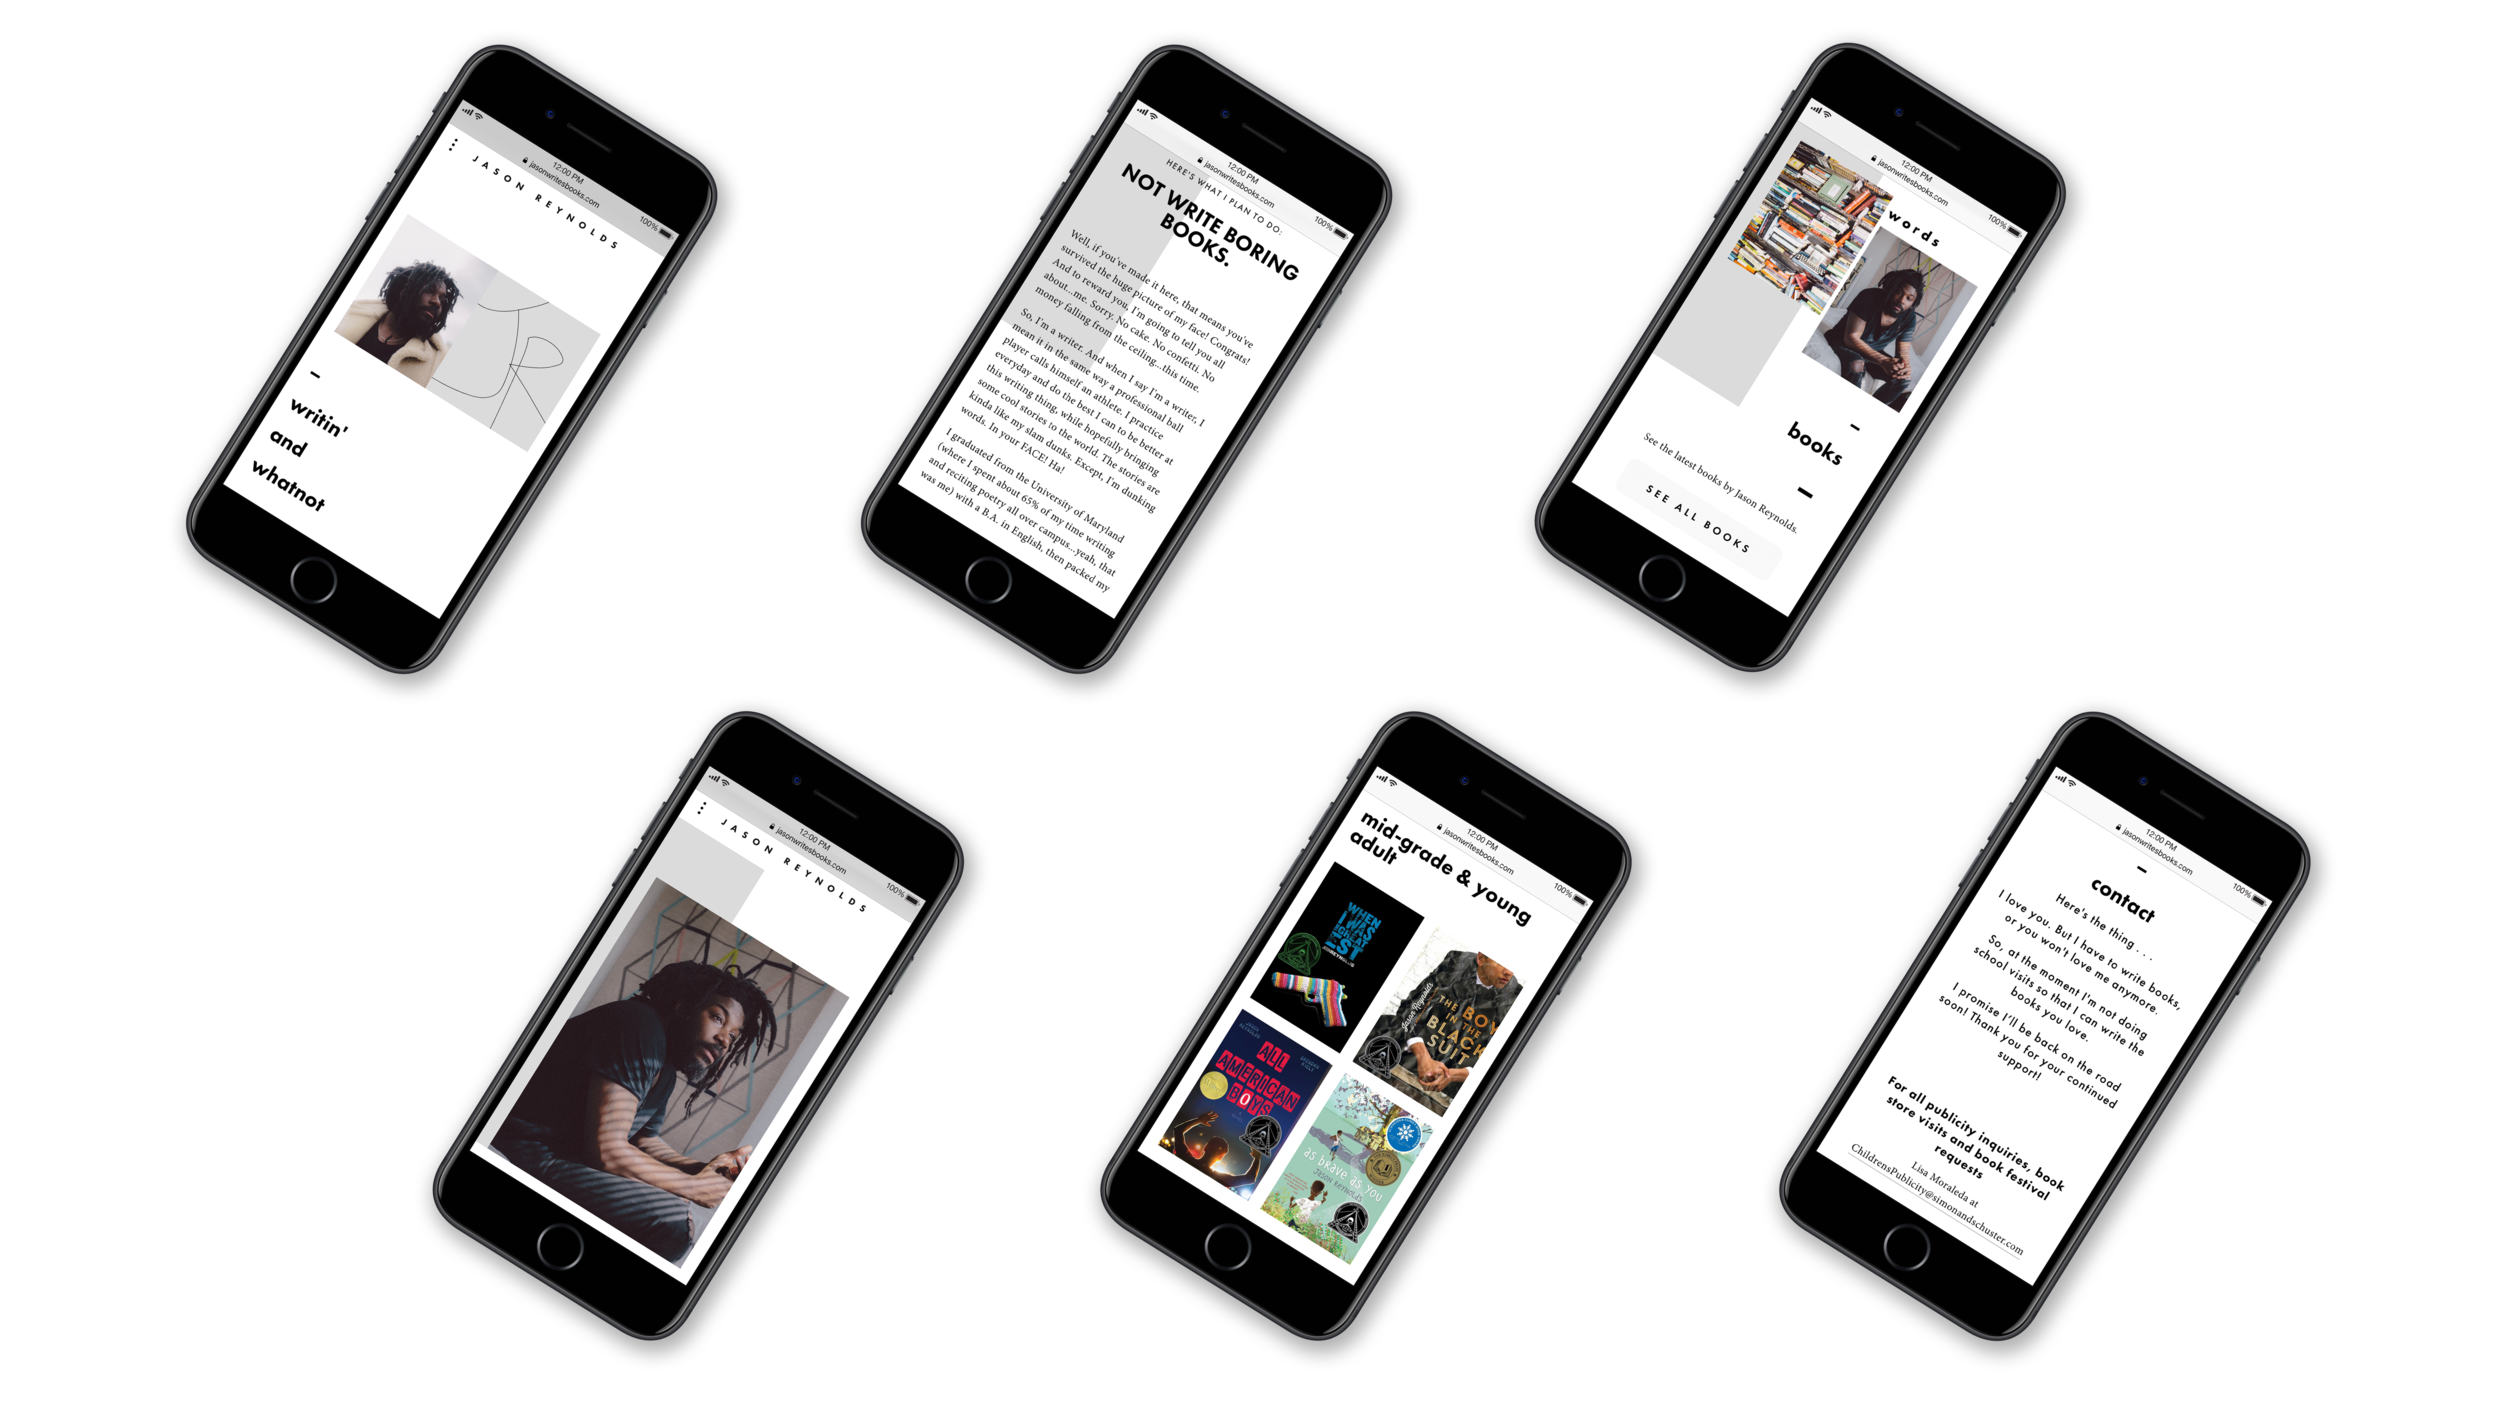 iPhoneMockup_JasonReynolds.png